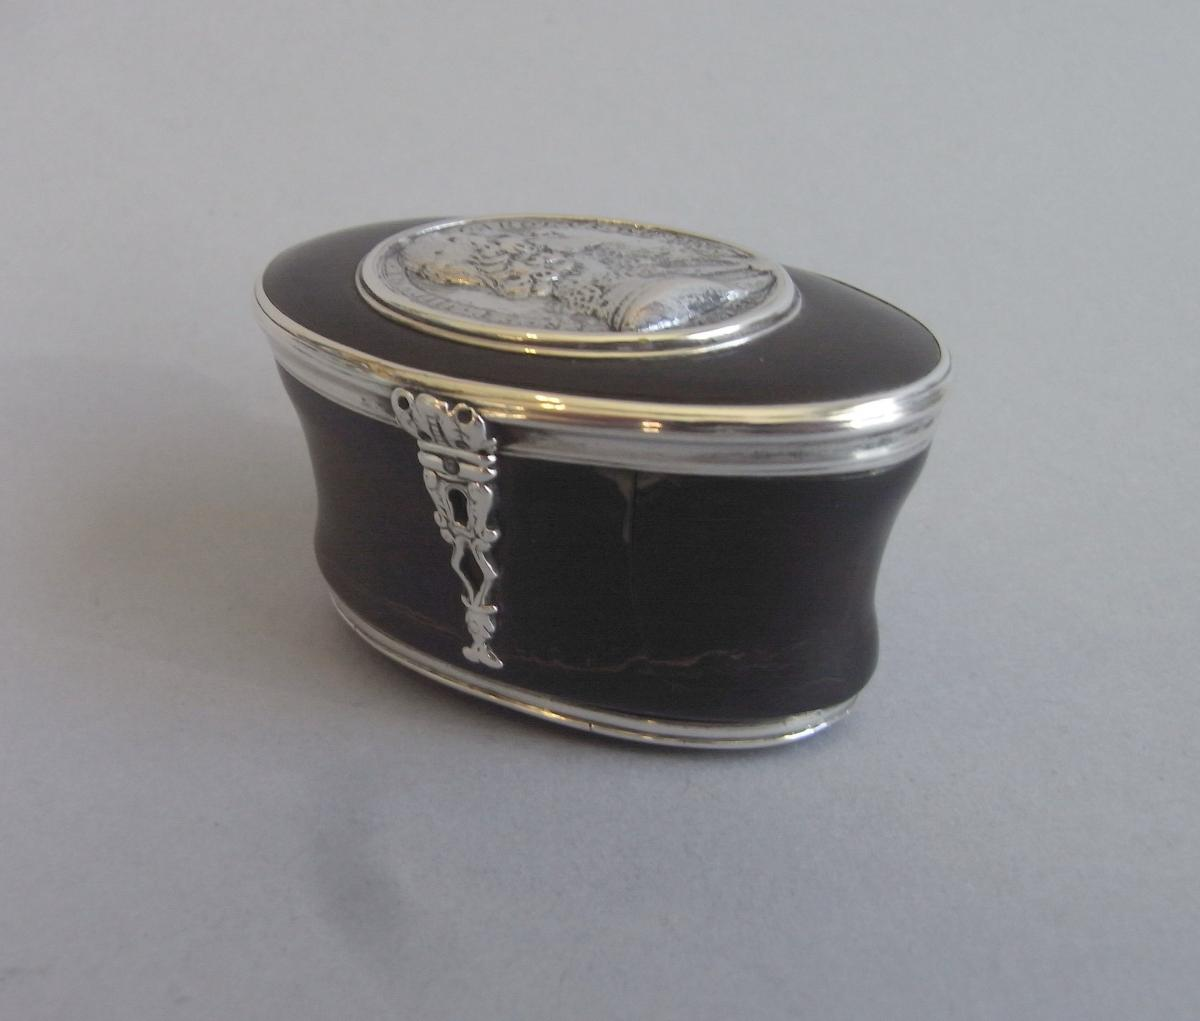 An important William III silver mounted Tortoiseshell Commemorative Standing Snuff Canister, inset with a cast Commonwealth Roya